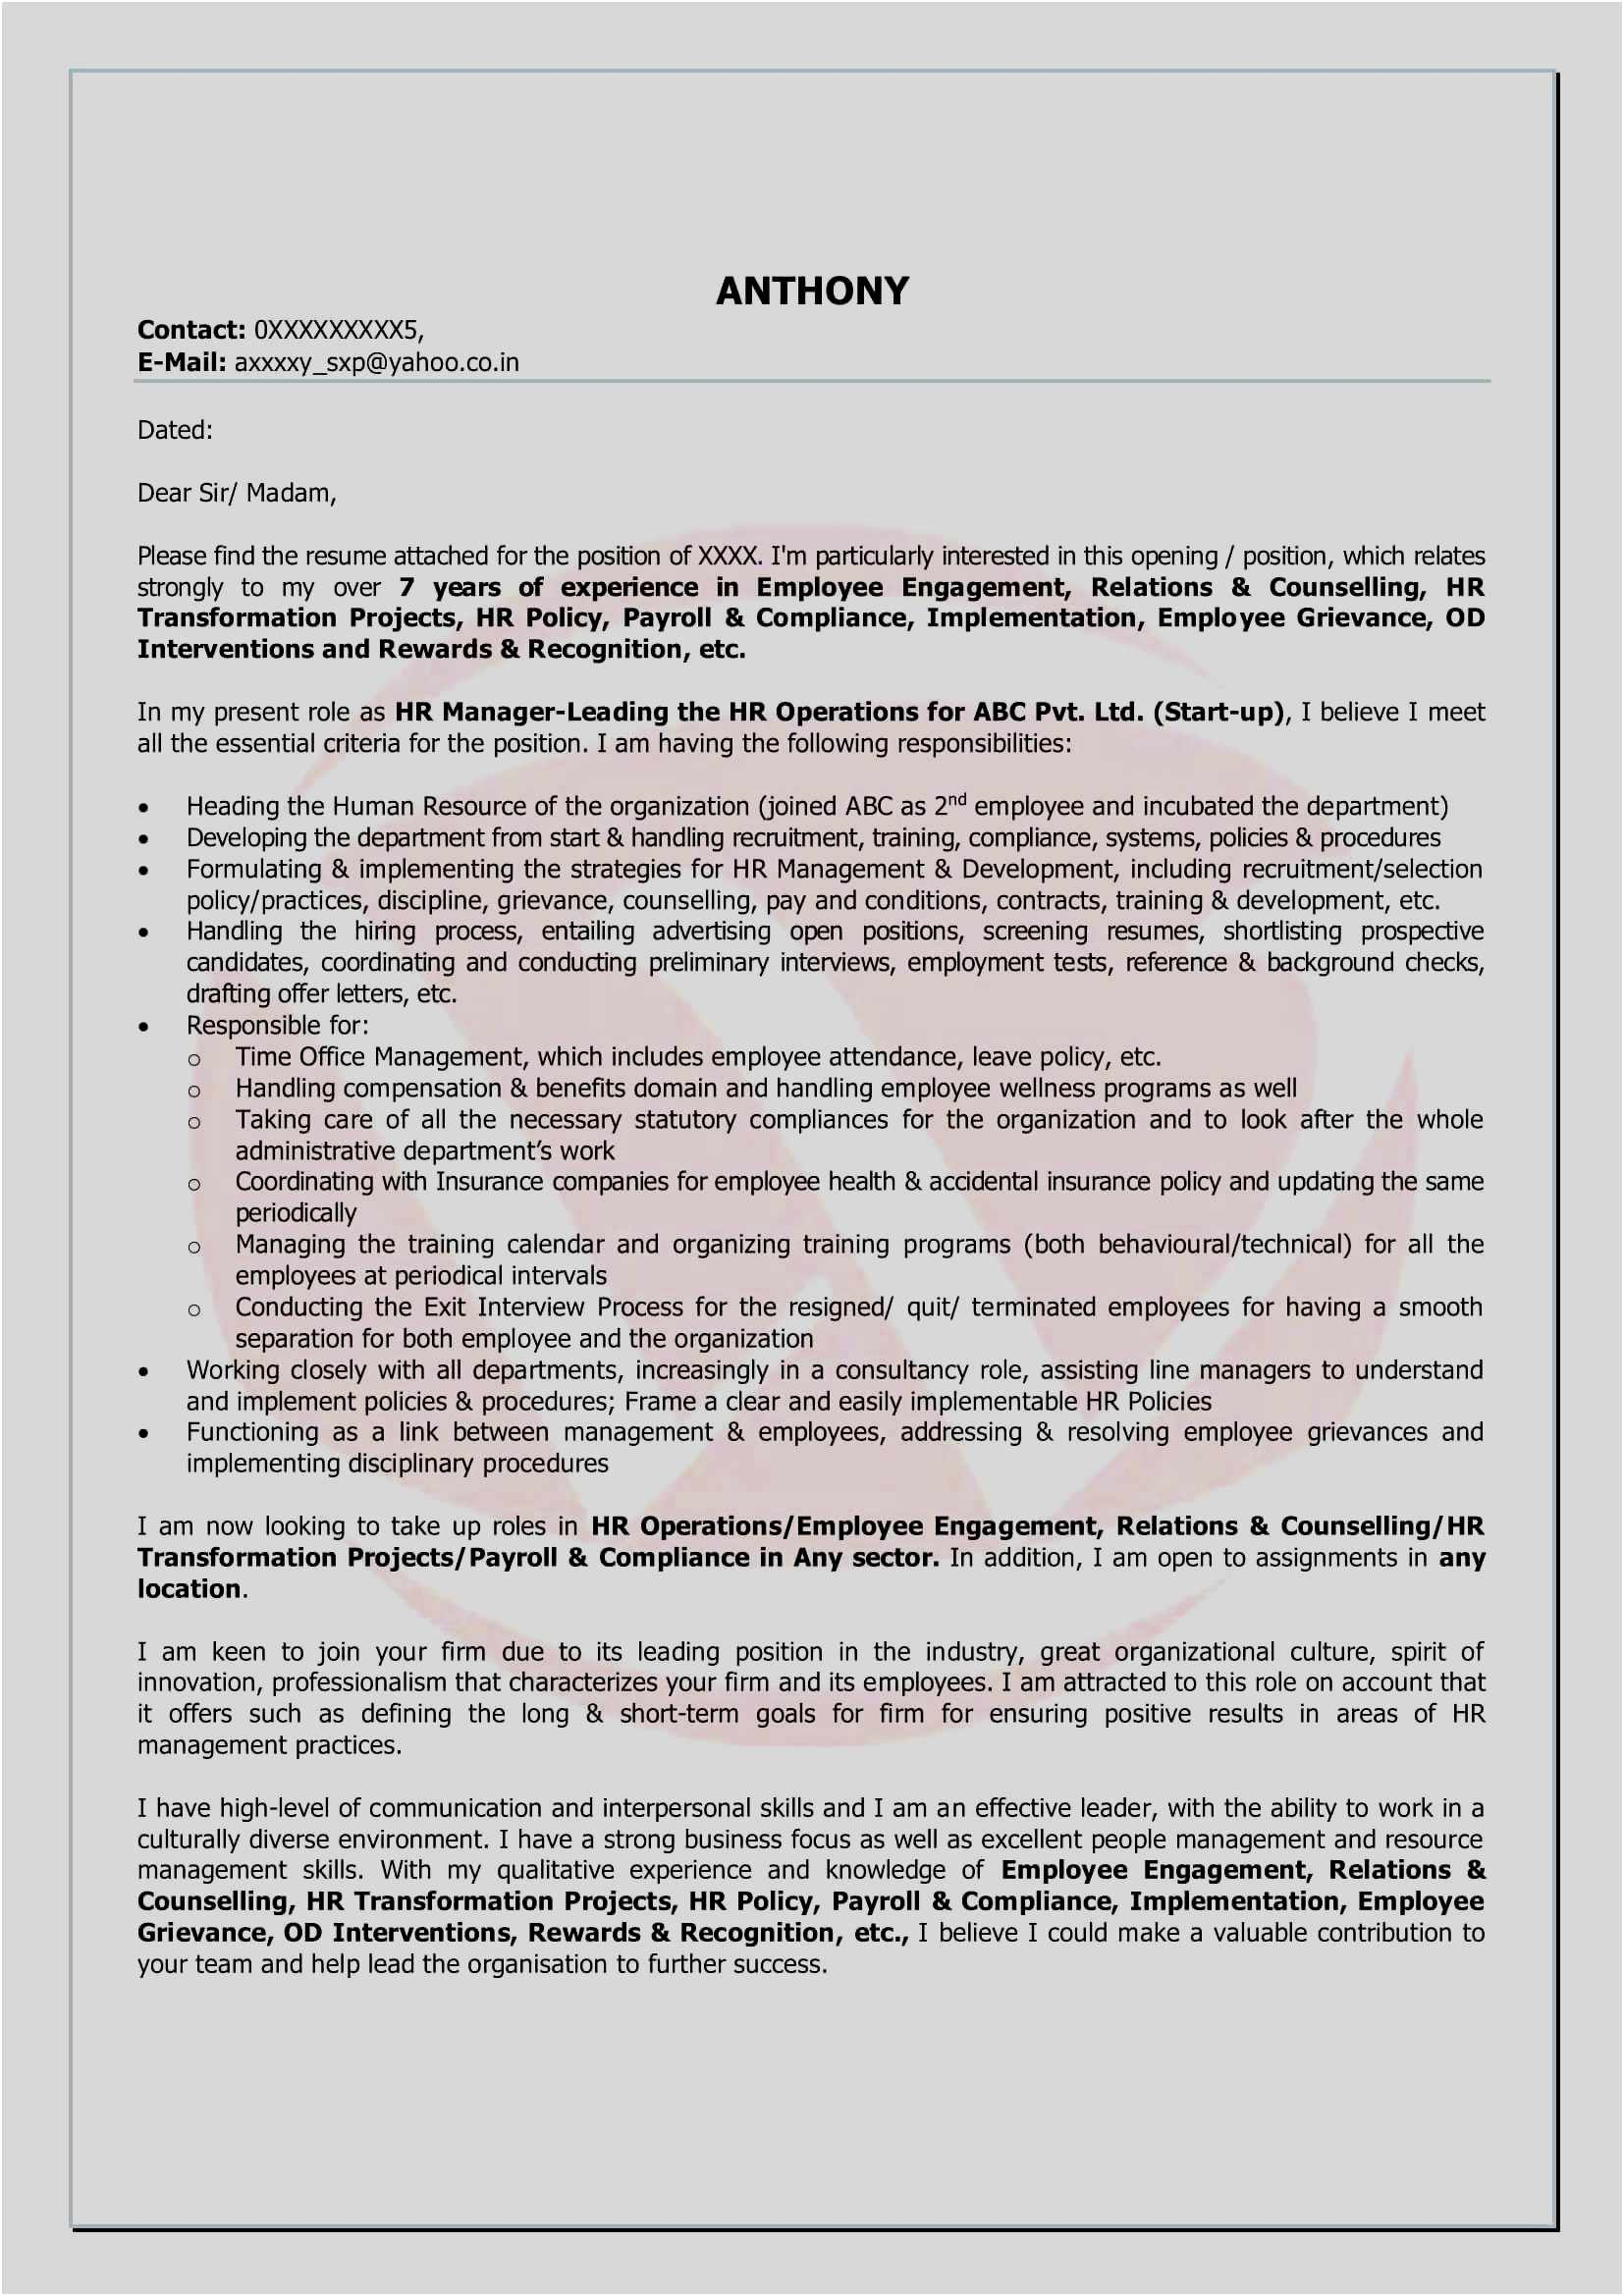 Distributor Agreement Sample Contract Free Collection 45 Reseller Agreement Template Example Free Resume